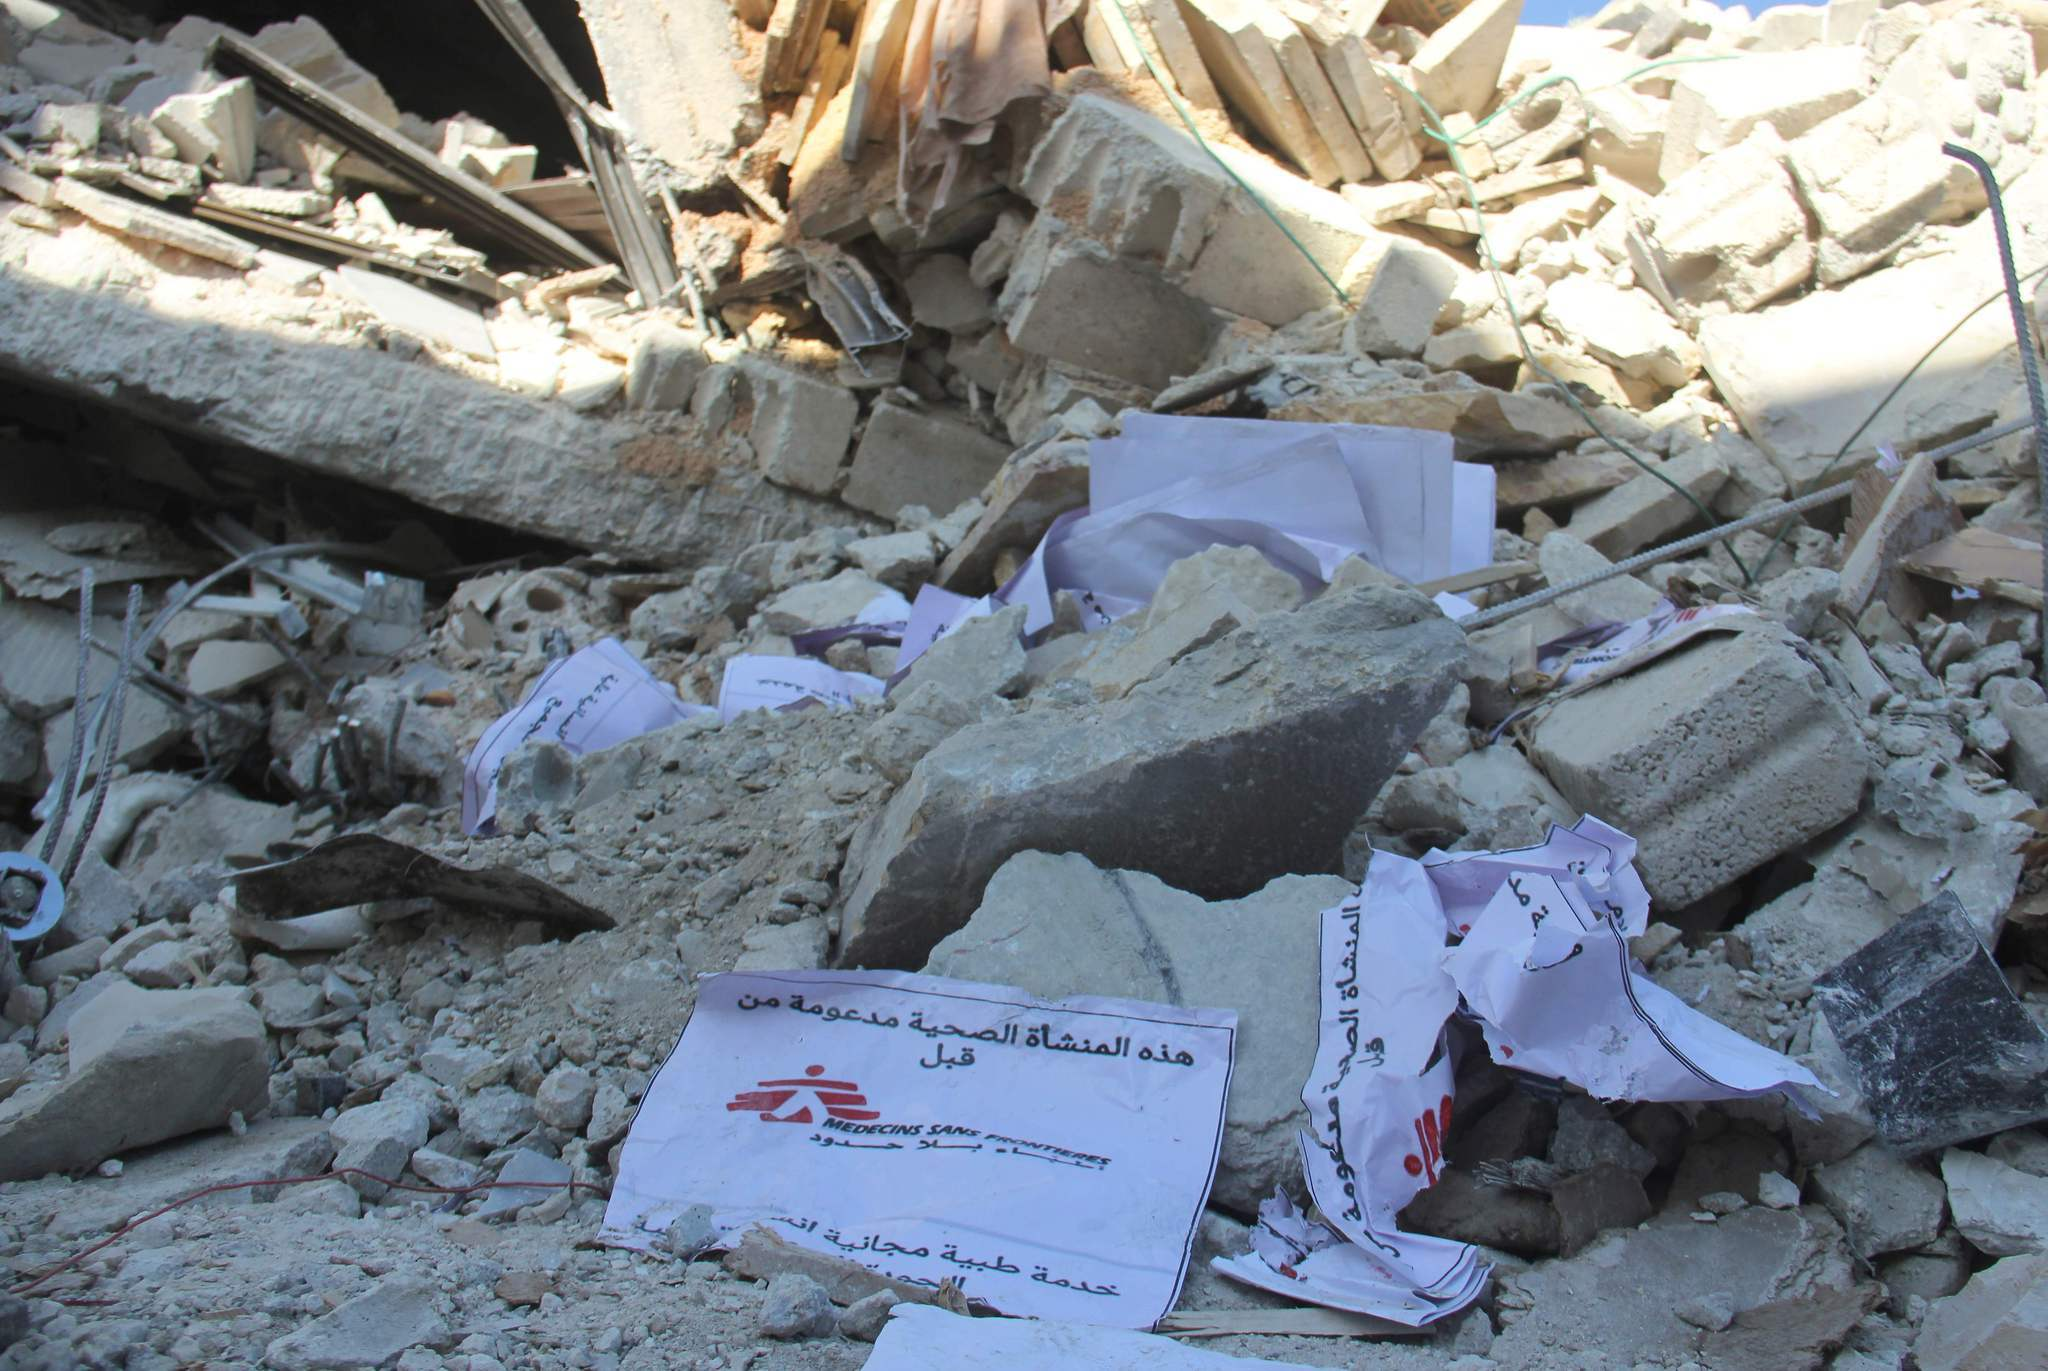 Russia denies it bombed hospital in Syria; France calls attack a war crime